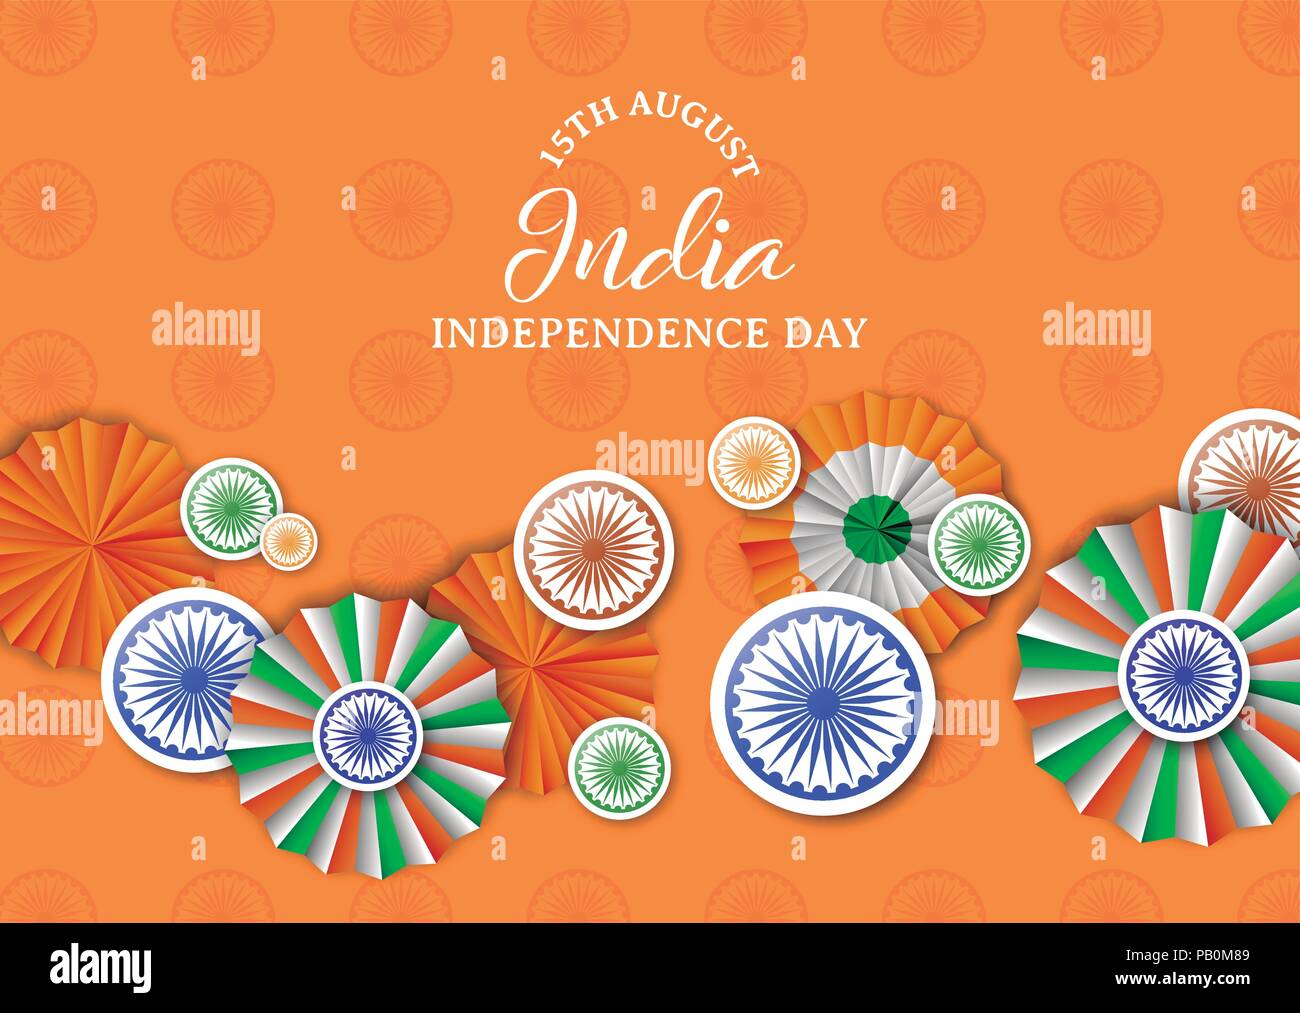 India independence day greeting card illustration traditional india independence day greeting card illustration traditional tricolor badges and indian flag color decoration with typography quote eps10 vector m4hsunfo